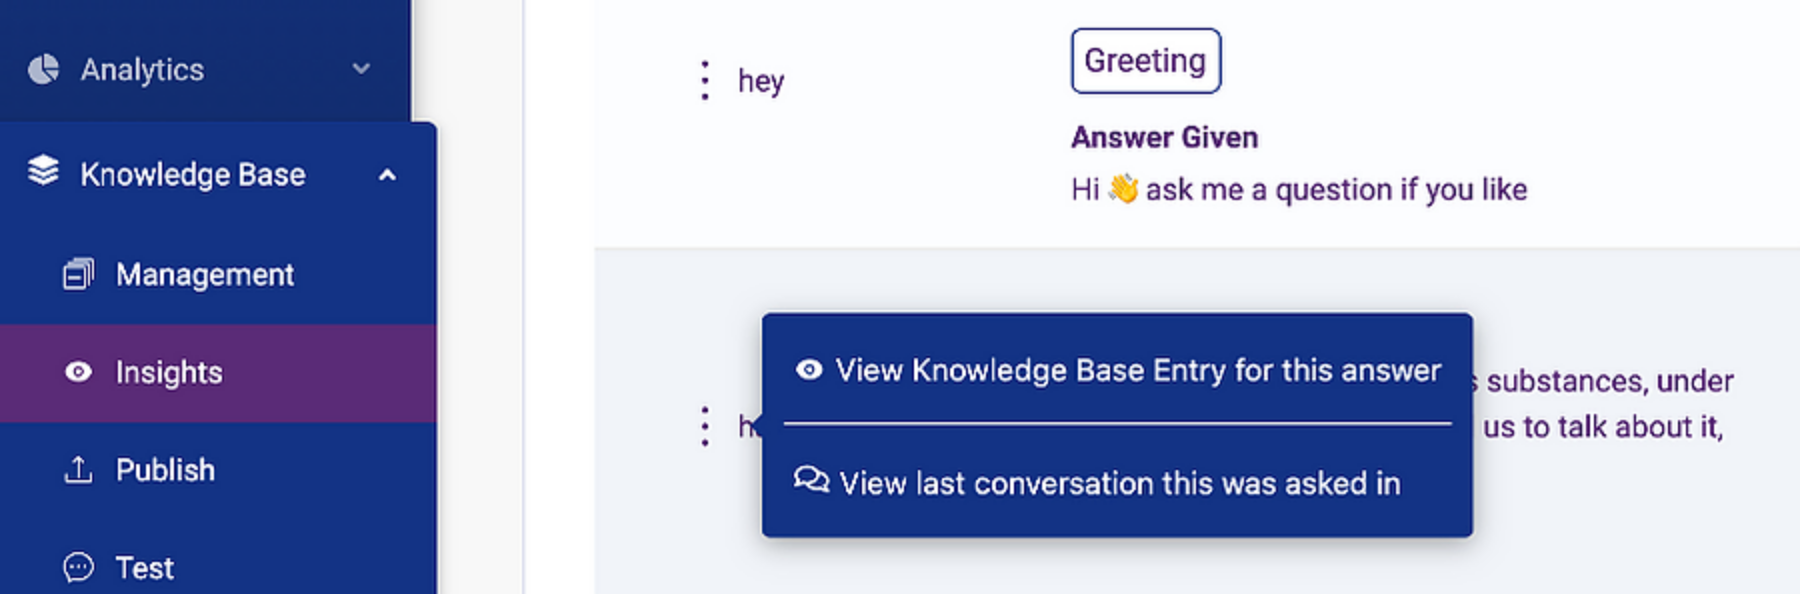 KB answer for conversation history in FAQbot